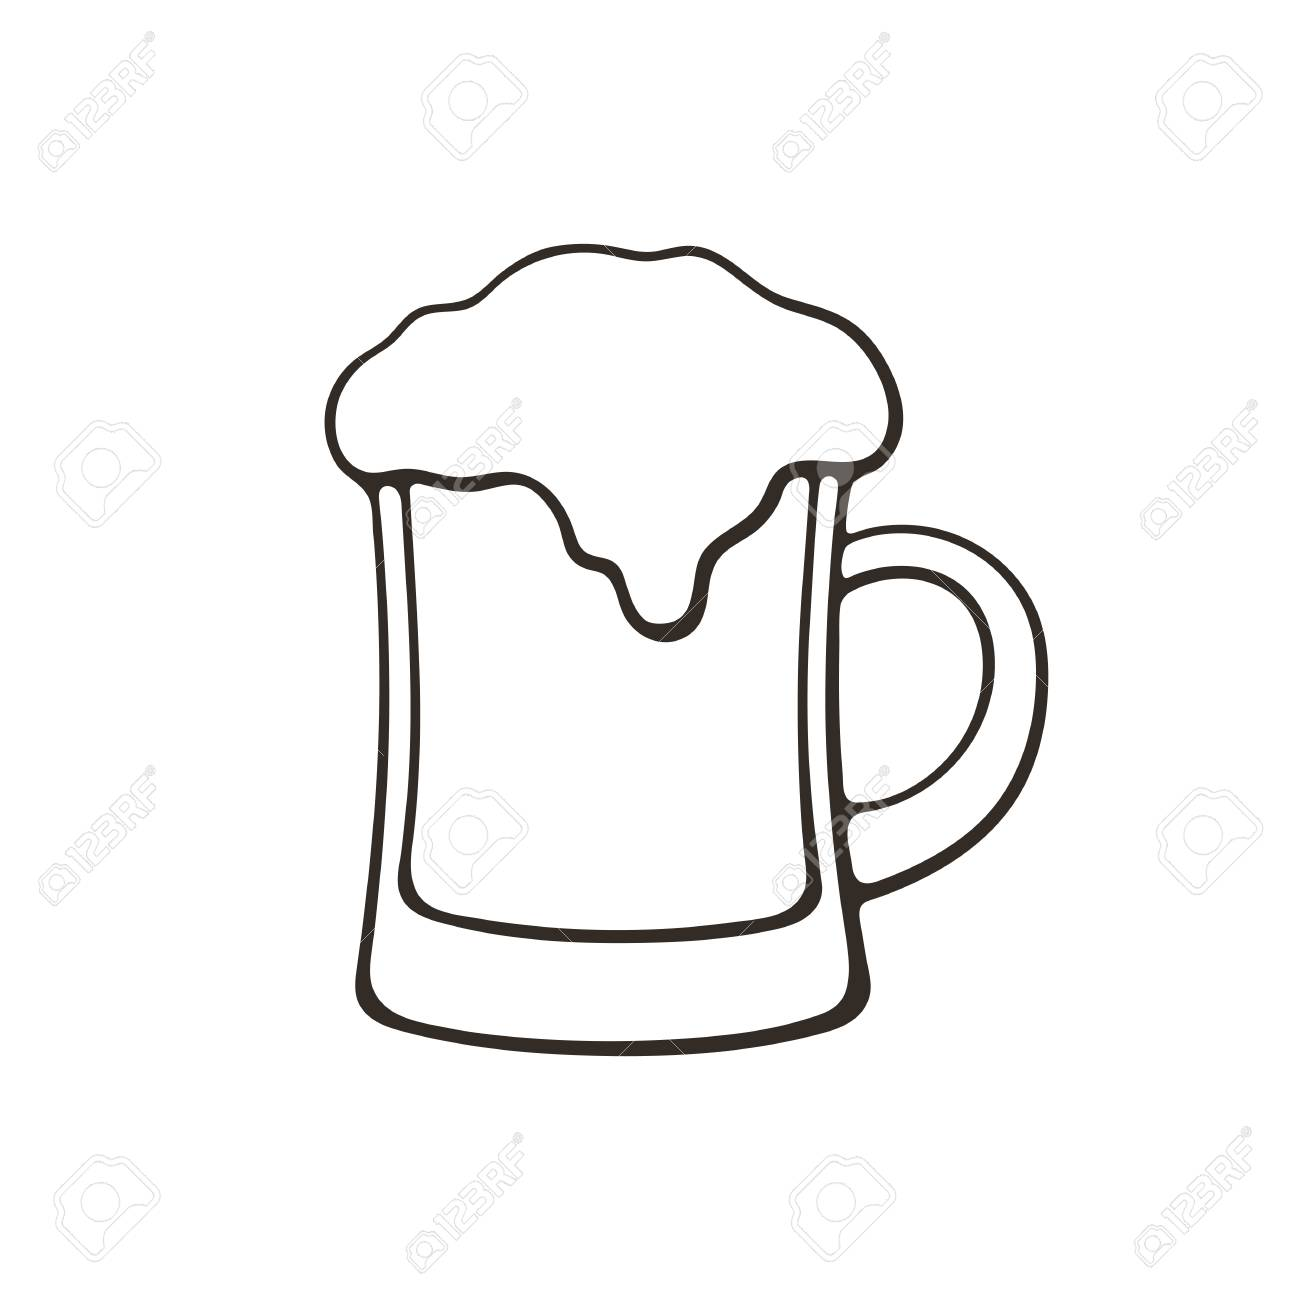 Vector Illustration Hand Drawn Doodle Of A Mug Of Beer With Royalty Free Cliparts Vectors And Stock Illustration Image 88647924